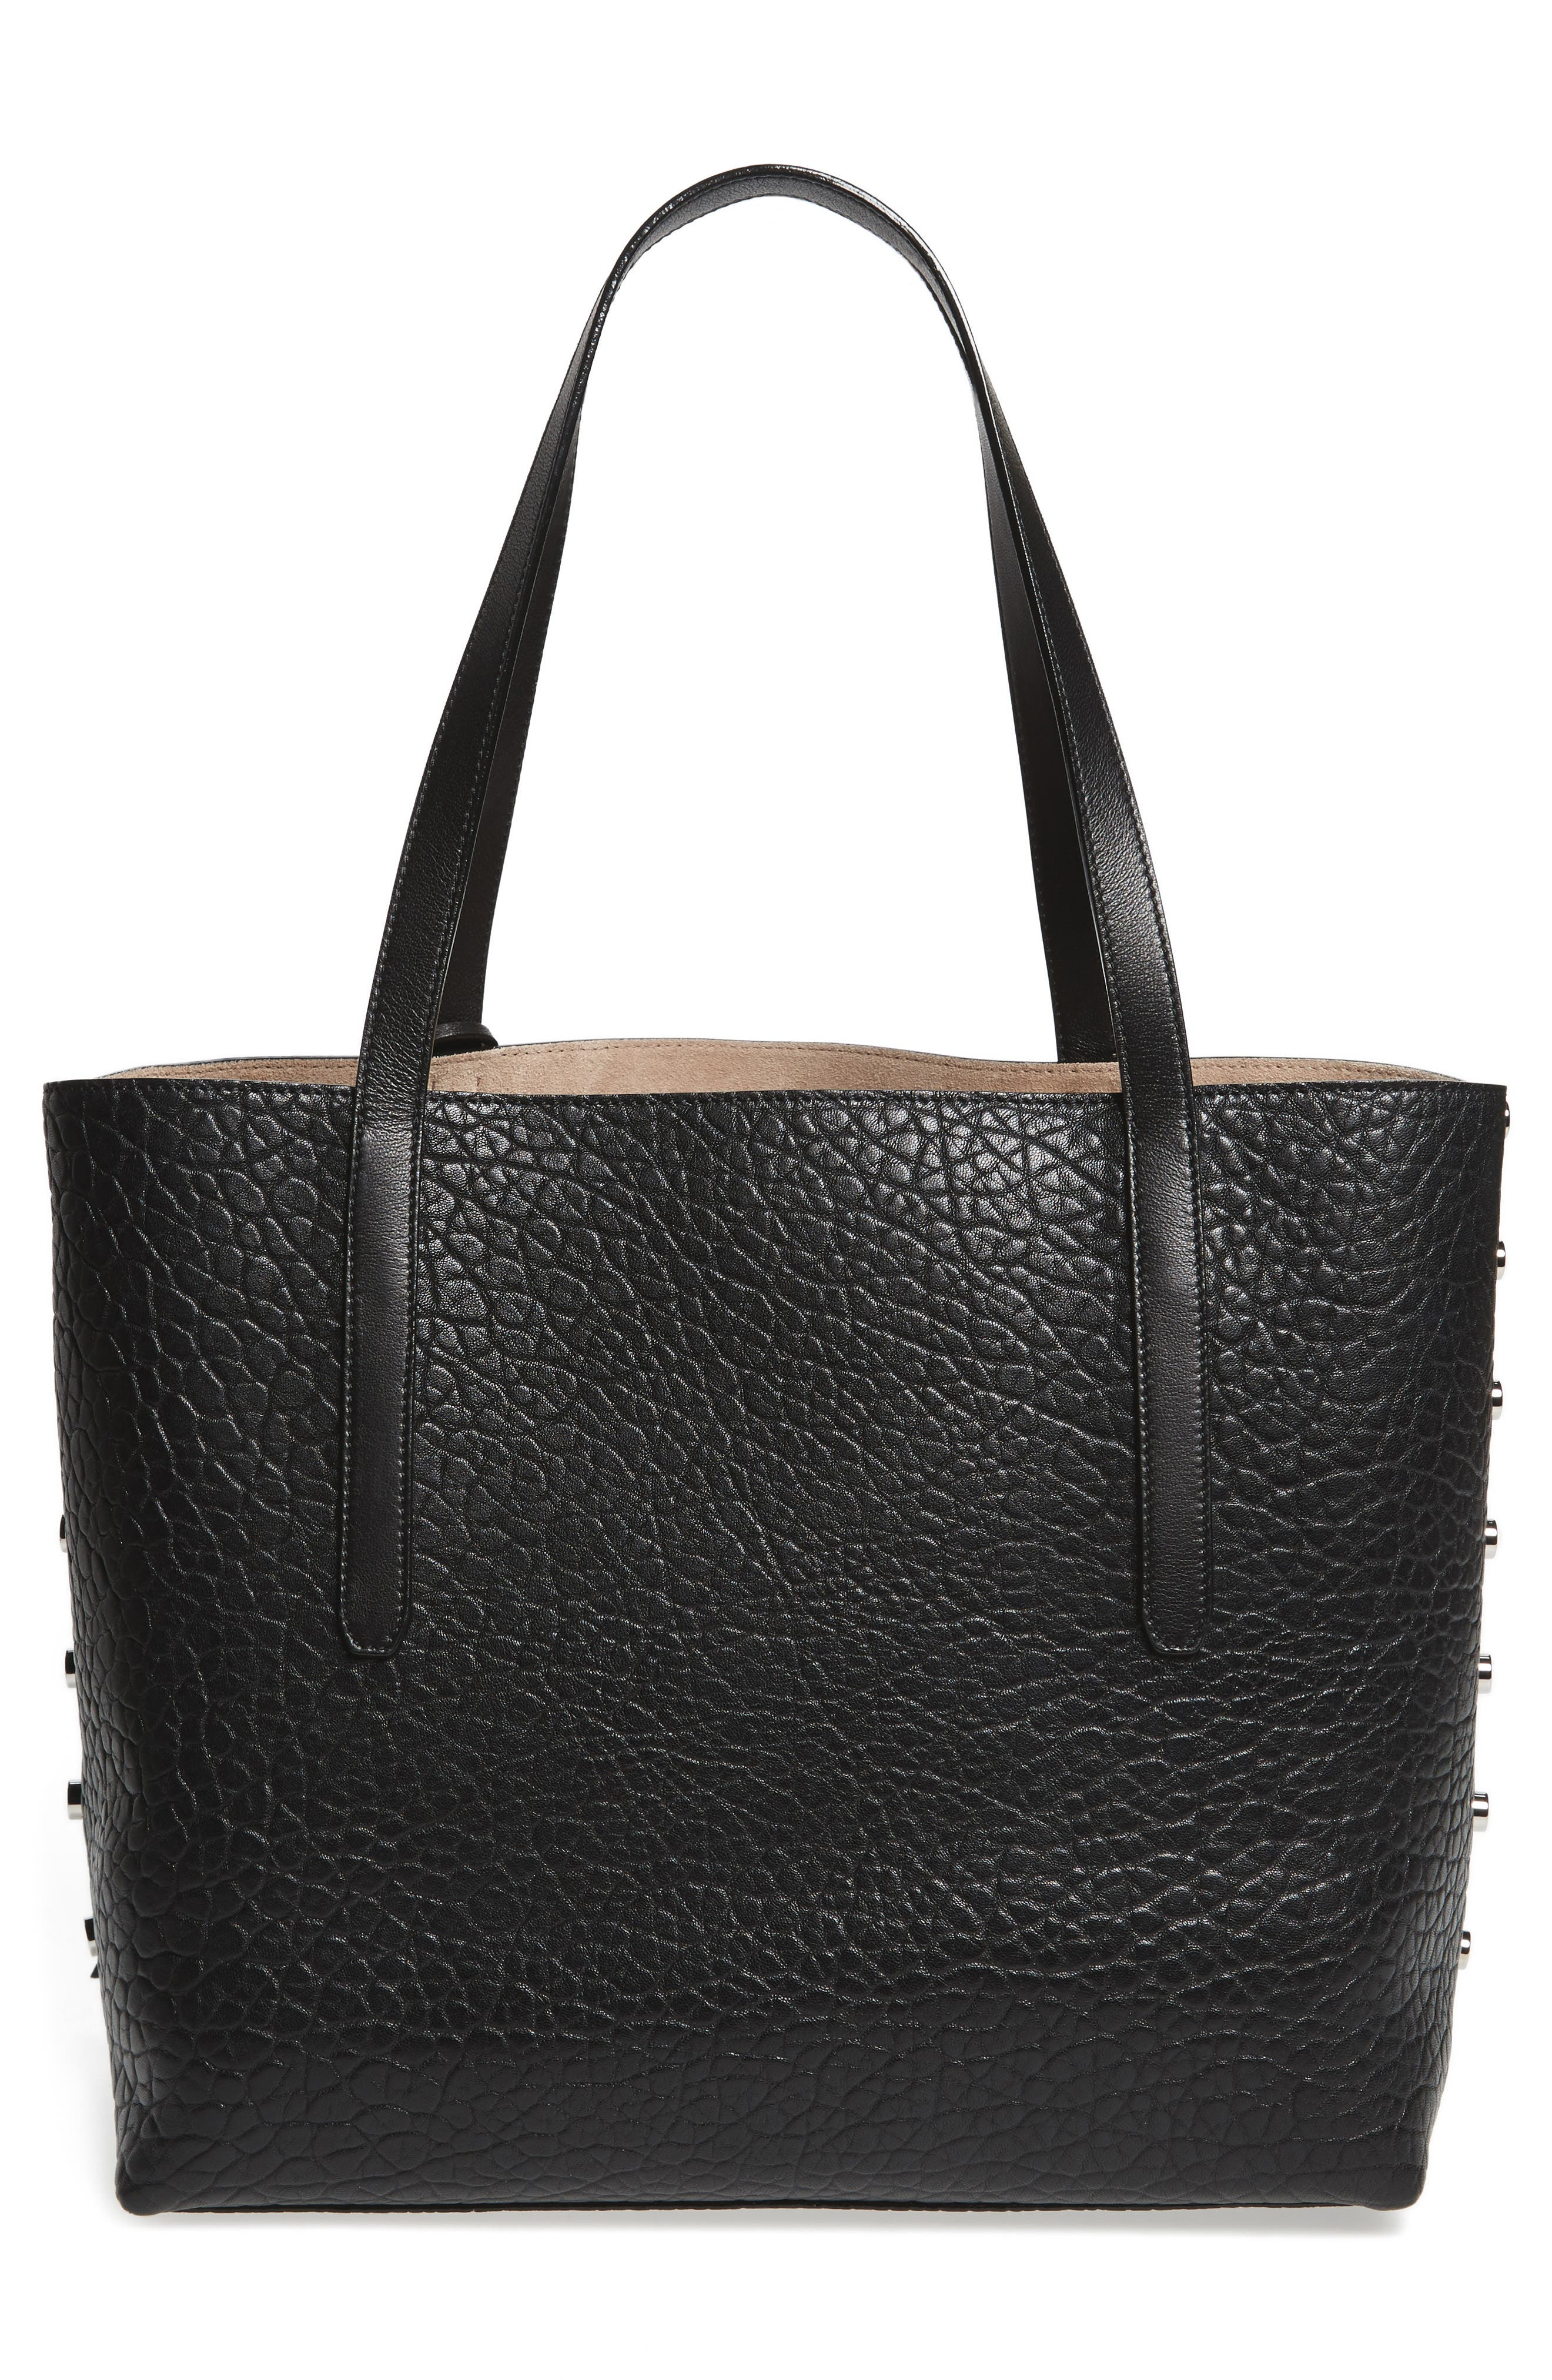 Twist East West Leather Tote,                             Alternate thumbnail 2, color,                             Black Mix